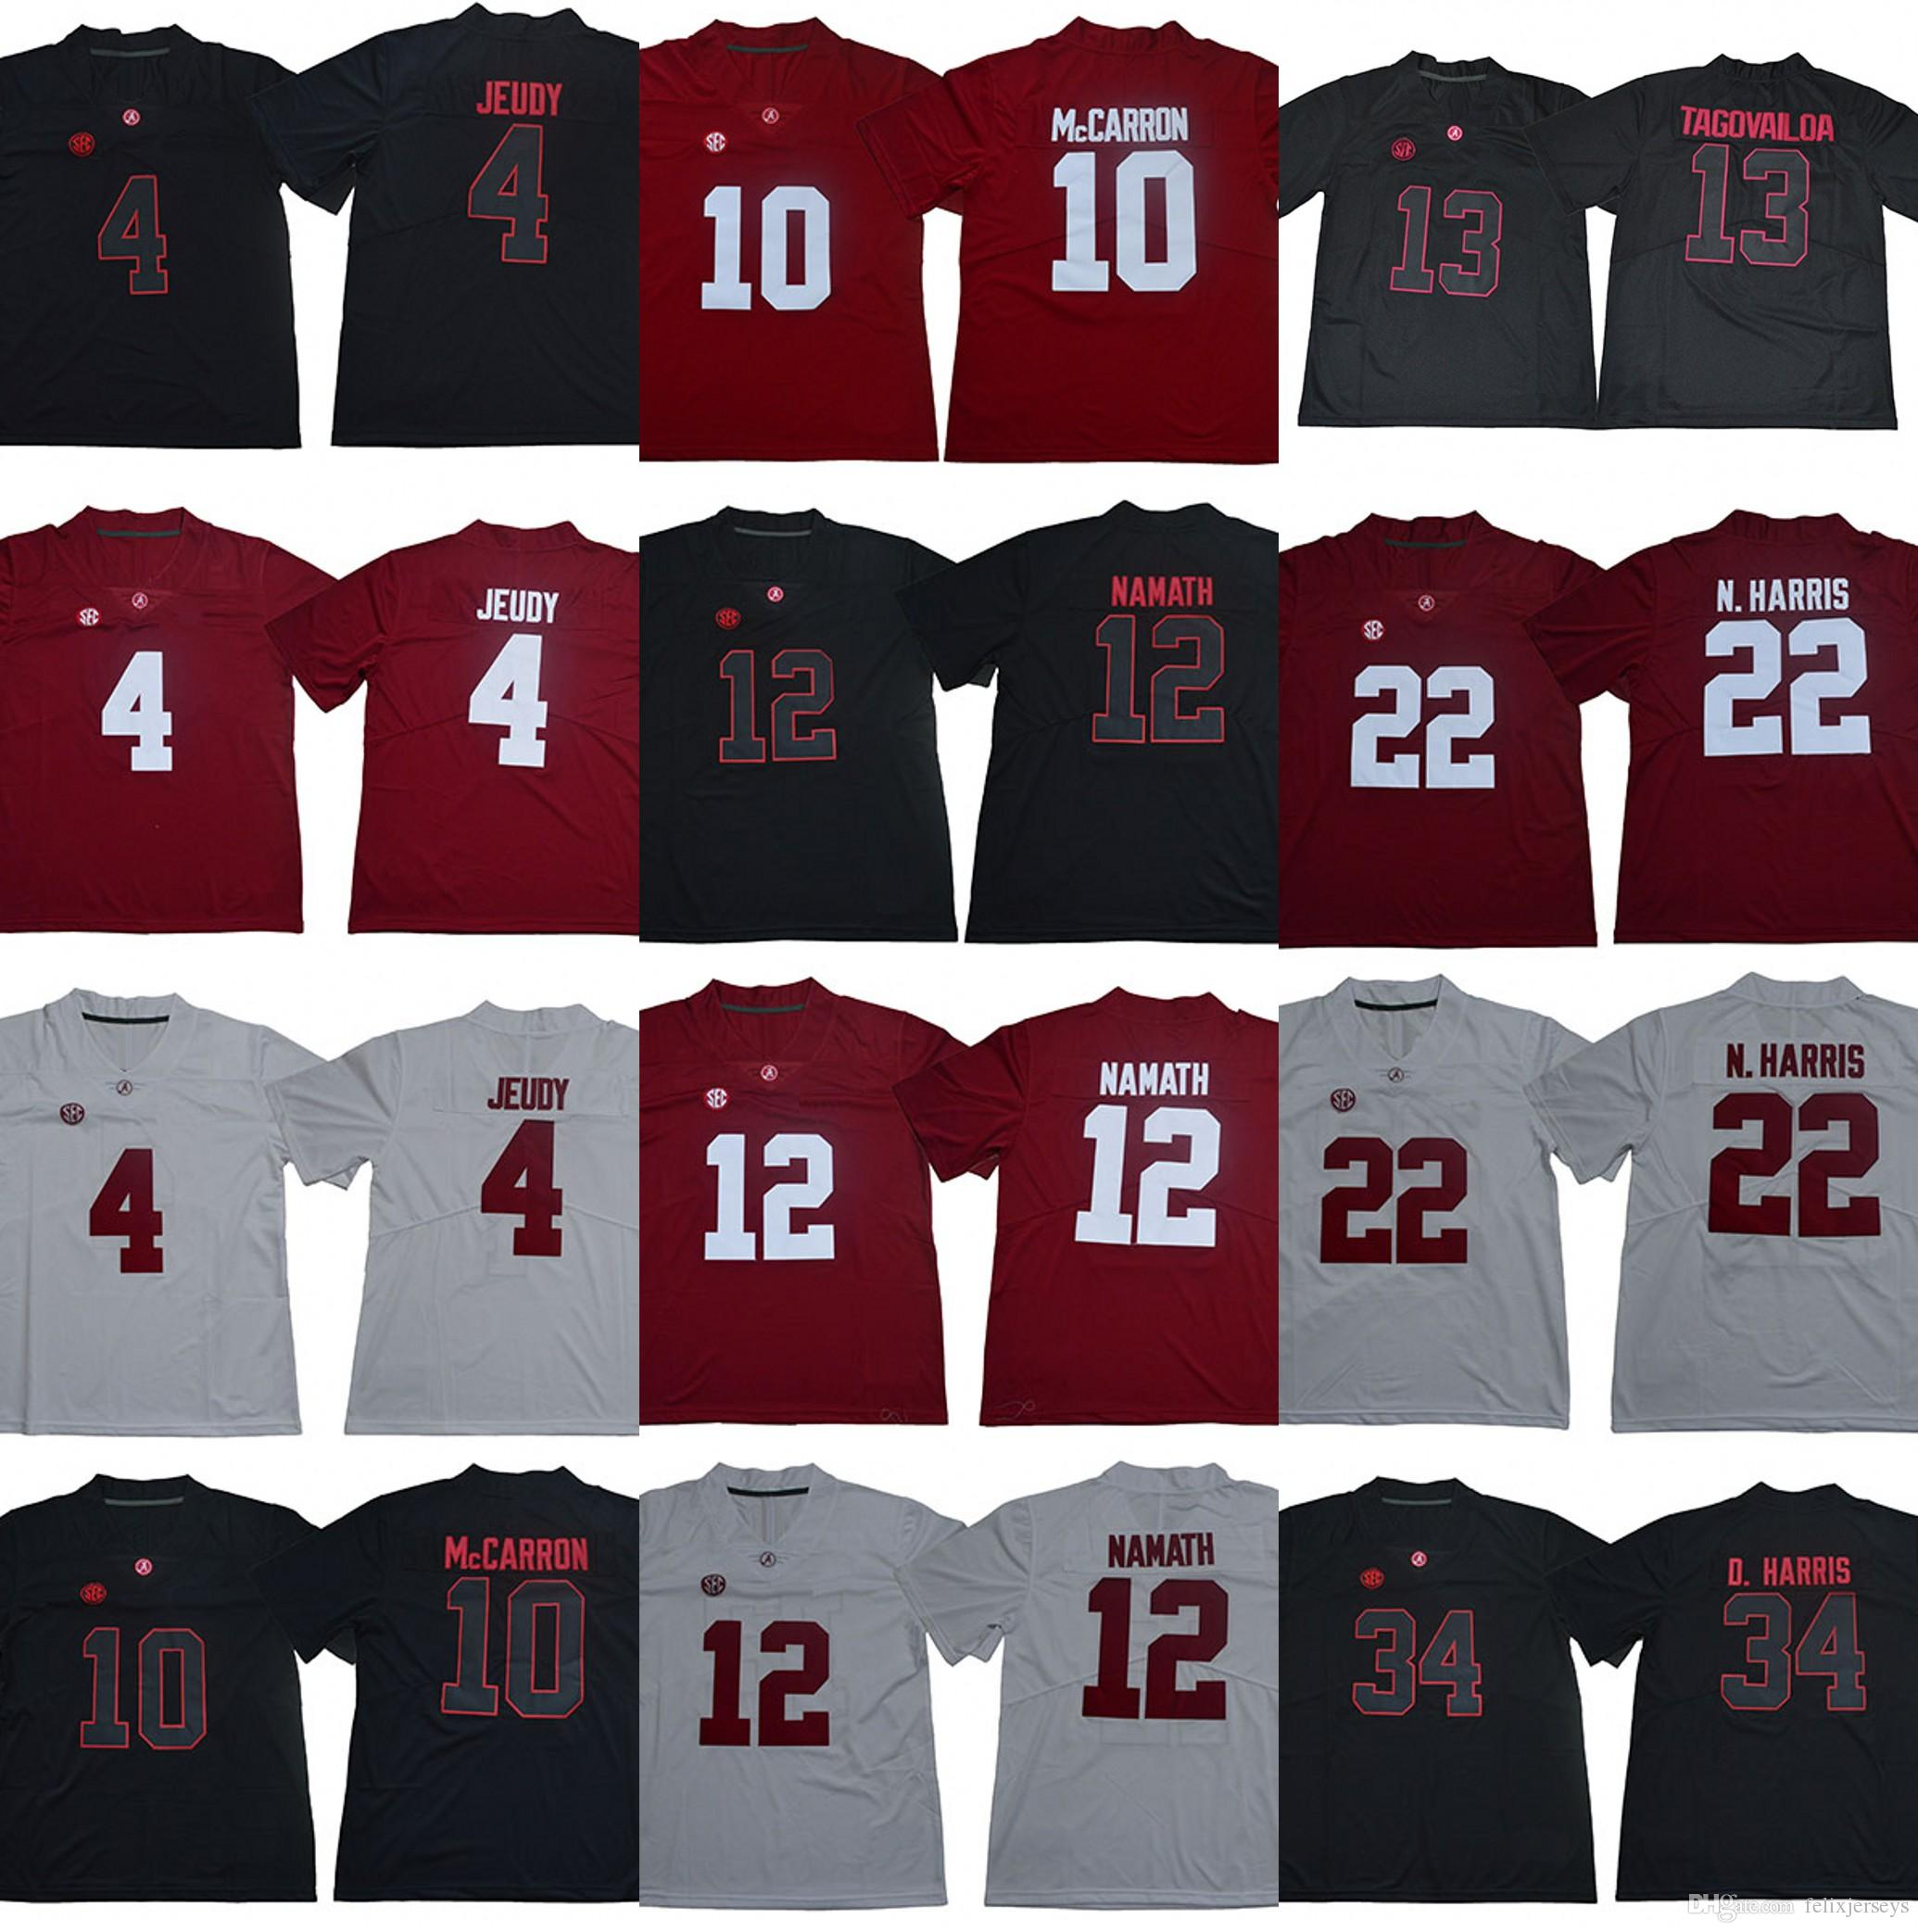 f276e5745 13 Tua Tagovailoa Alabama Crimson Tide 4 Jerry Jeudy 10 AJ McCarron 12 Joe  Namath 22 Najee N. Harris 34 Damien Harris College Jerseys UK 2019 From ...